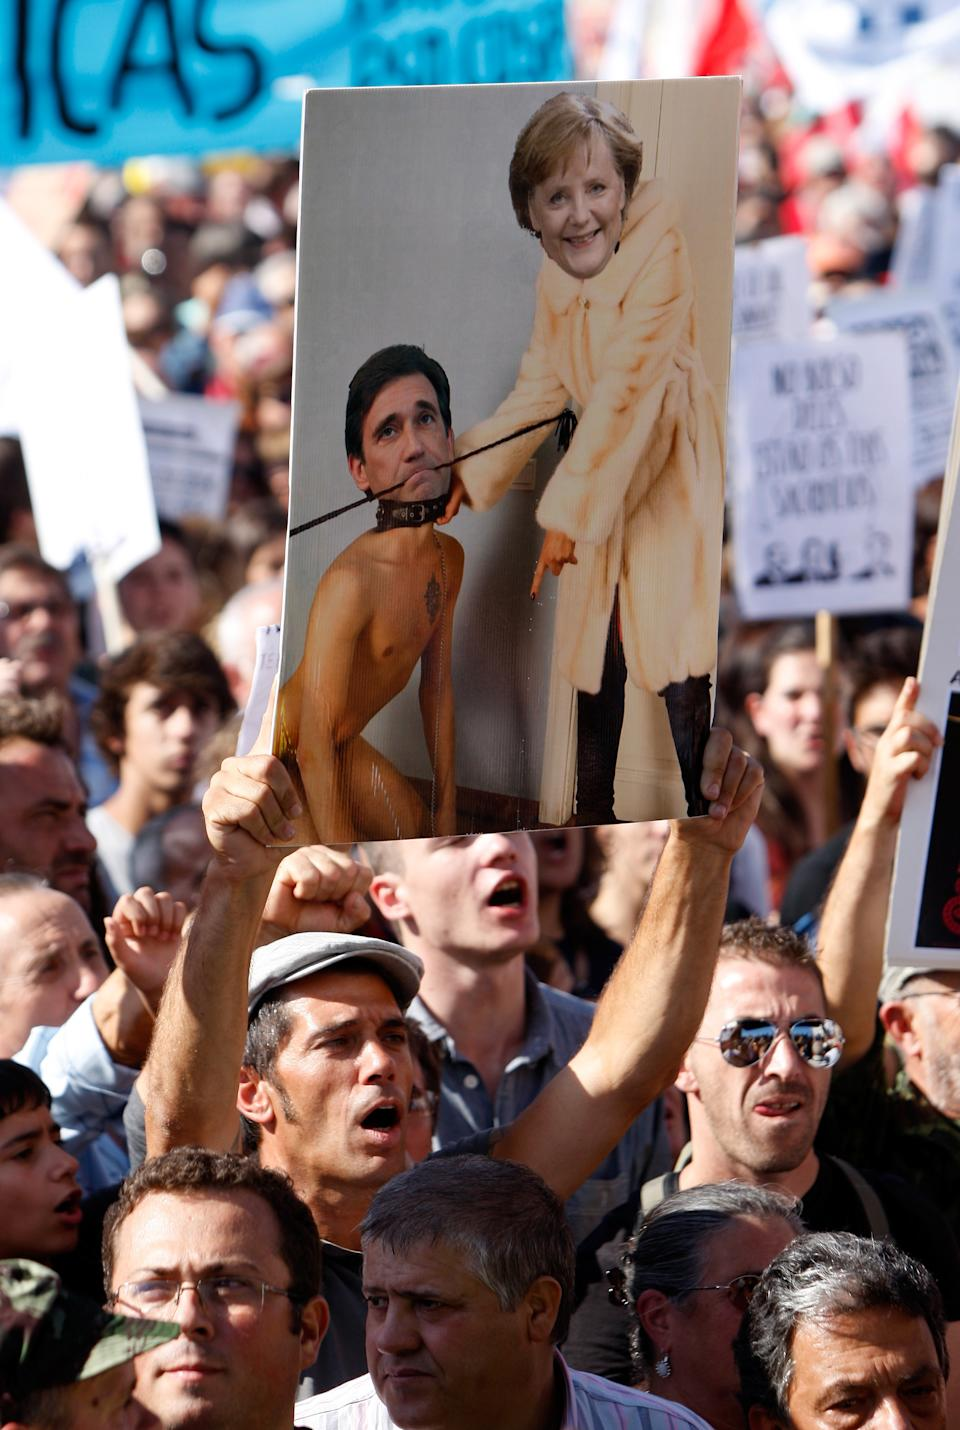 A protestor holds a collage showing German Chancellor Angela Merkel and Portuguese Prime Minister Pedro Passos Coelho during a workers unions' demonstration at Lisbon's Comercio Square, Saturday, Sept. 29 2012. Thousands of Portuguese enduring deep economic pain from austerity cuts took to the streets Saturday in protest. (AP Photo/Joao Henriques)